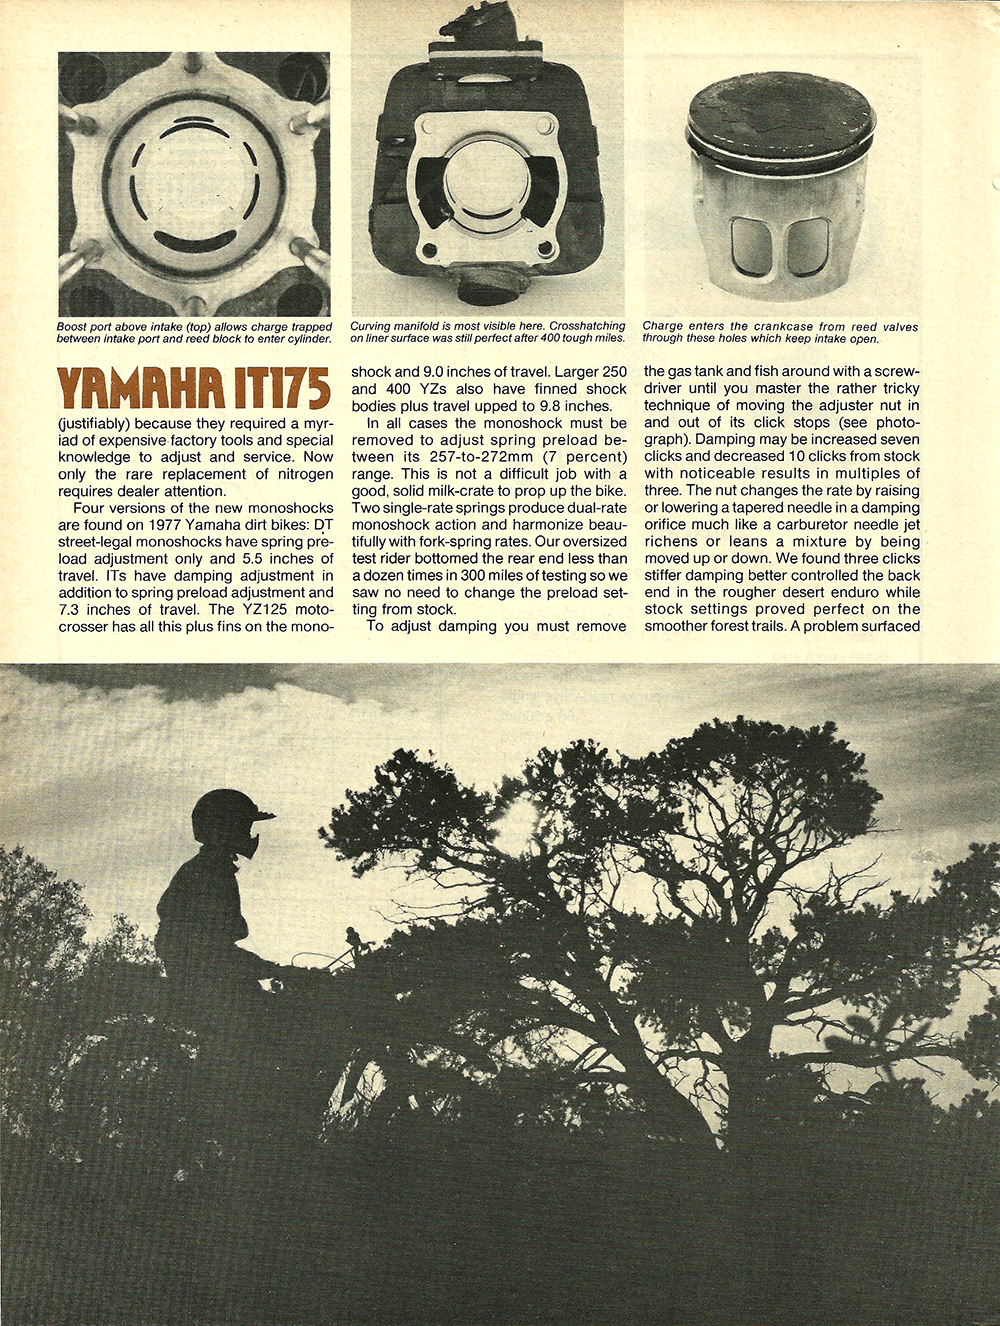 1977 Yamaha IT175 road test 5.jpg